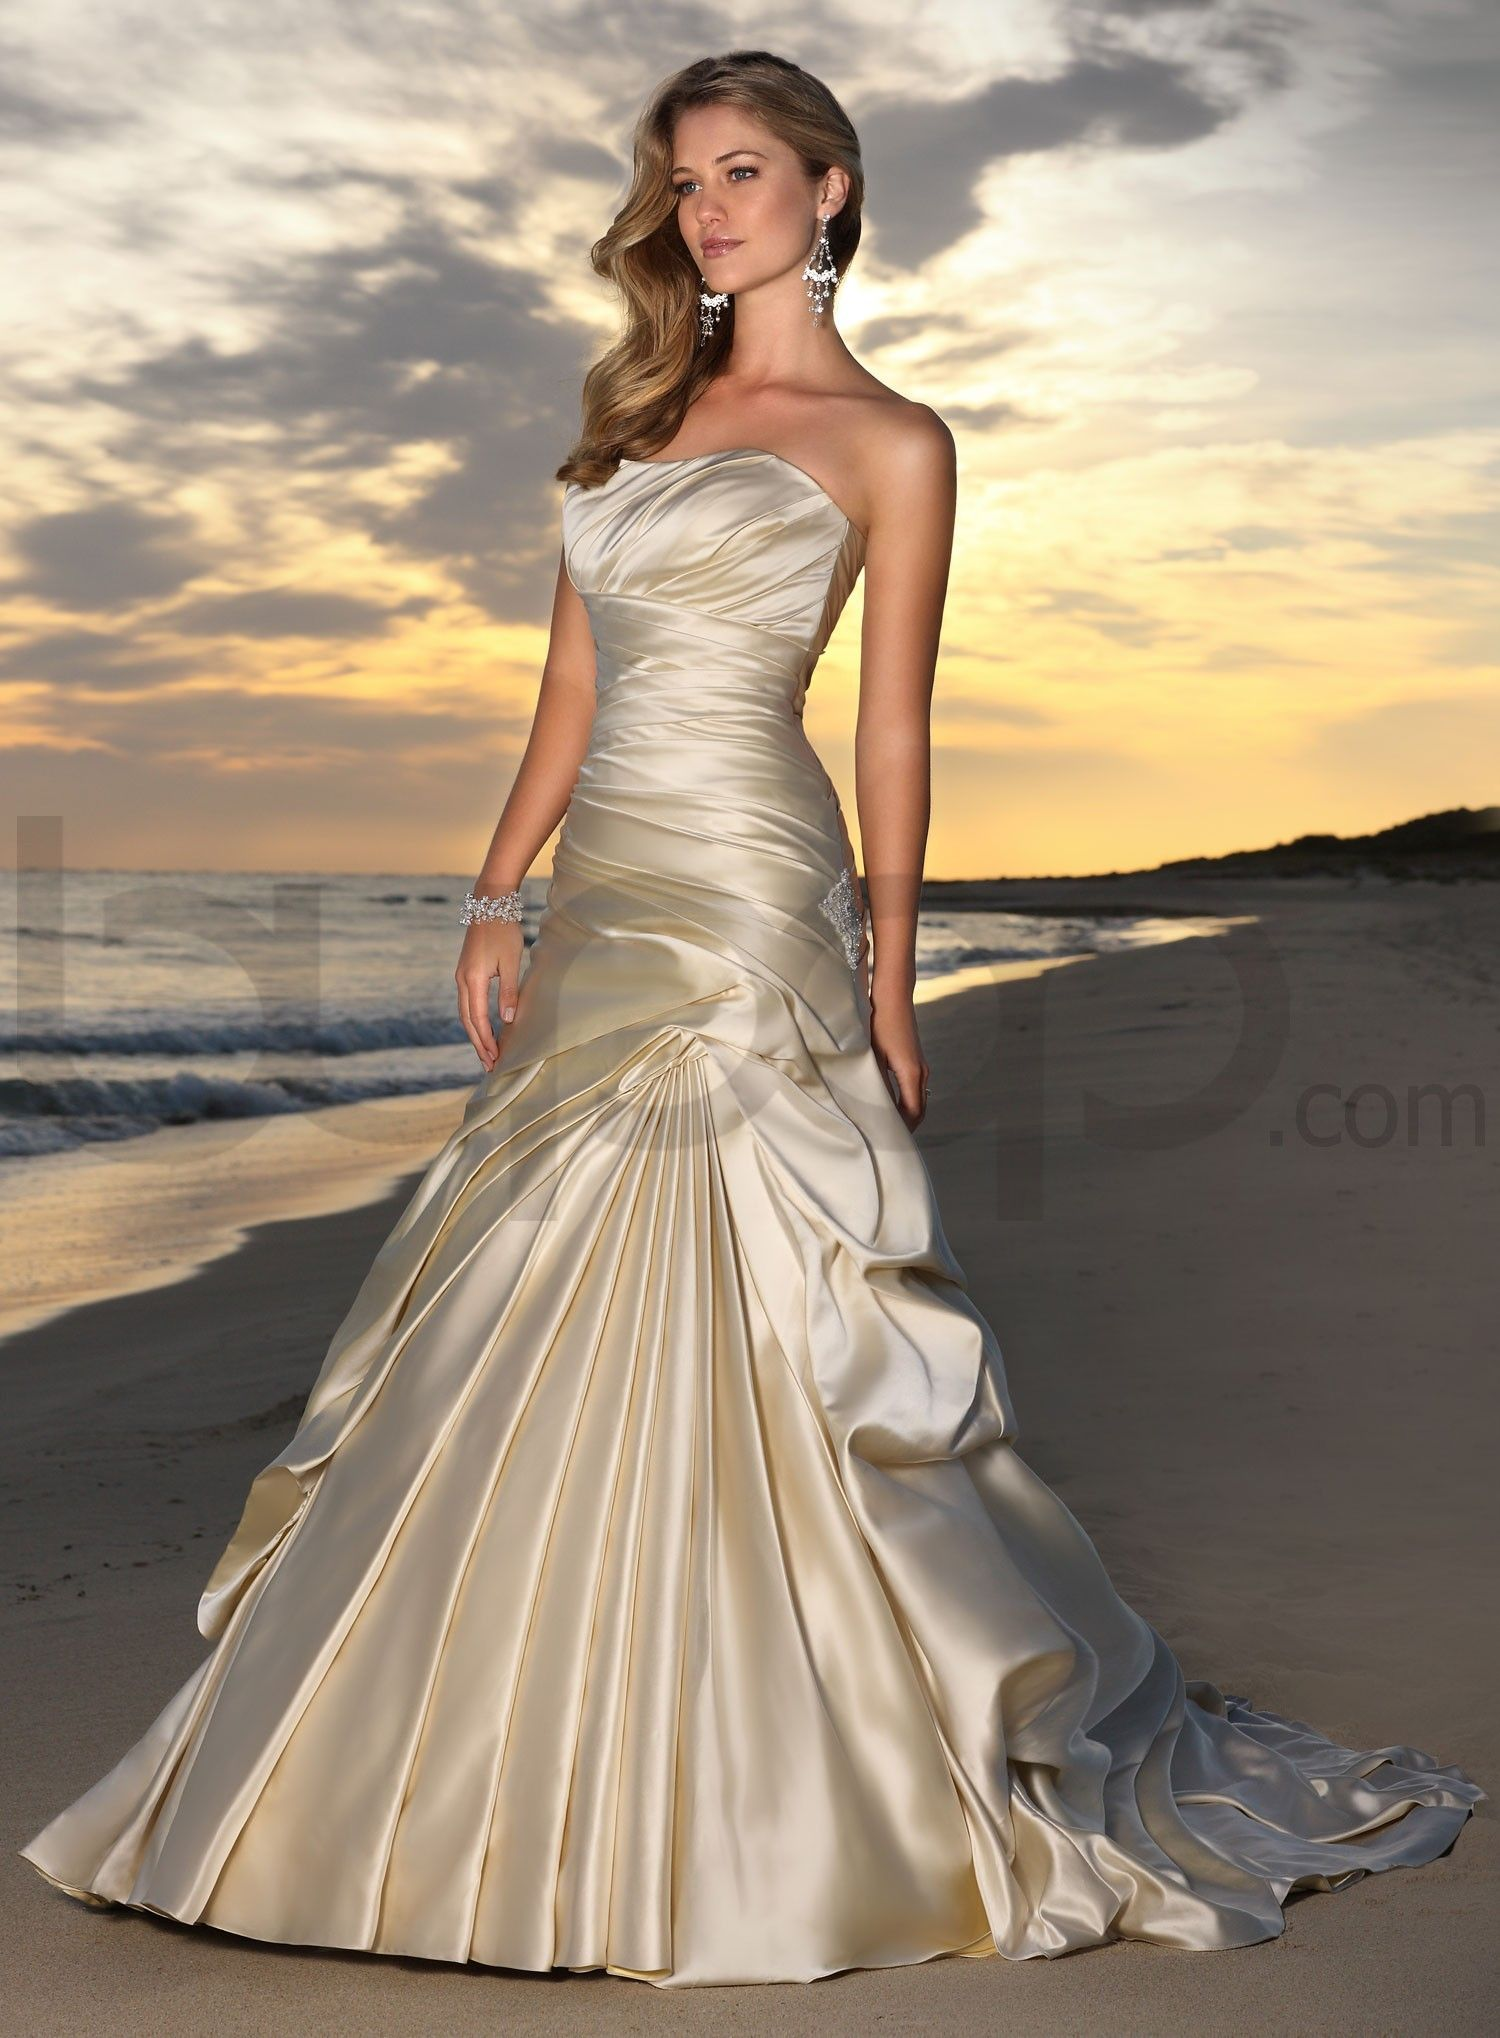 Ugly wedding dresses wedding dresses are ugly satin ball gown trumpetmermaid sweetheart satin sweep train champagne ruffles wedding dresses at msdressy ombrellifo Image collections